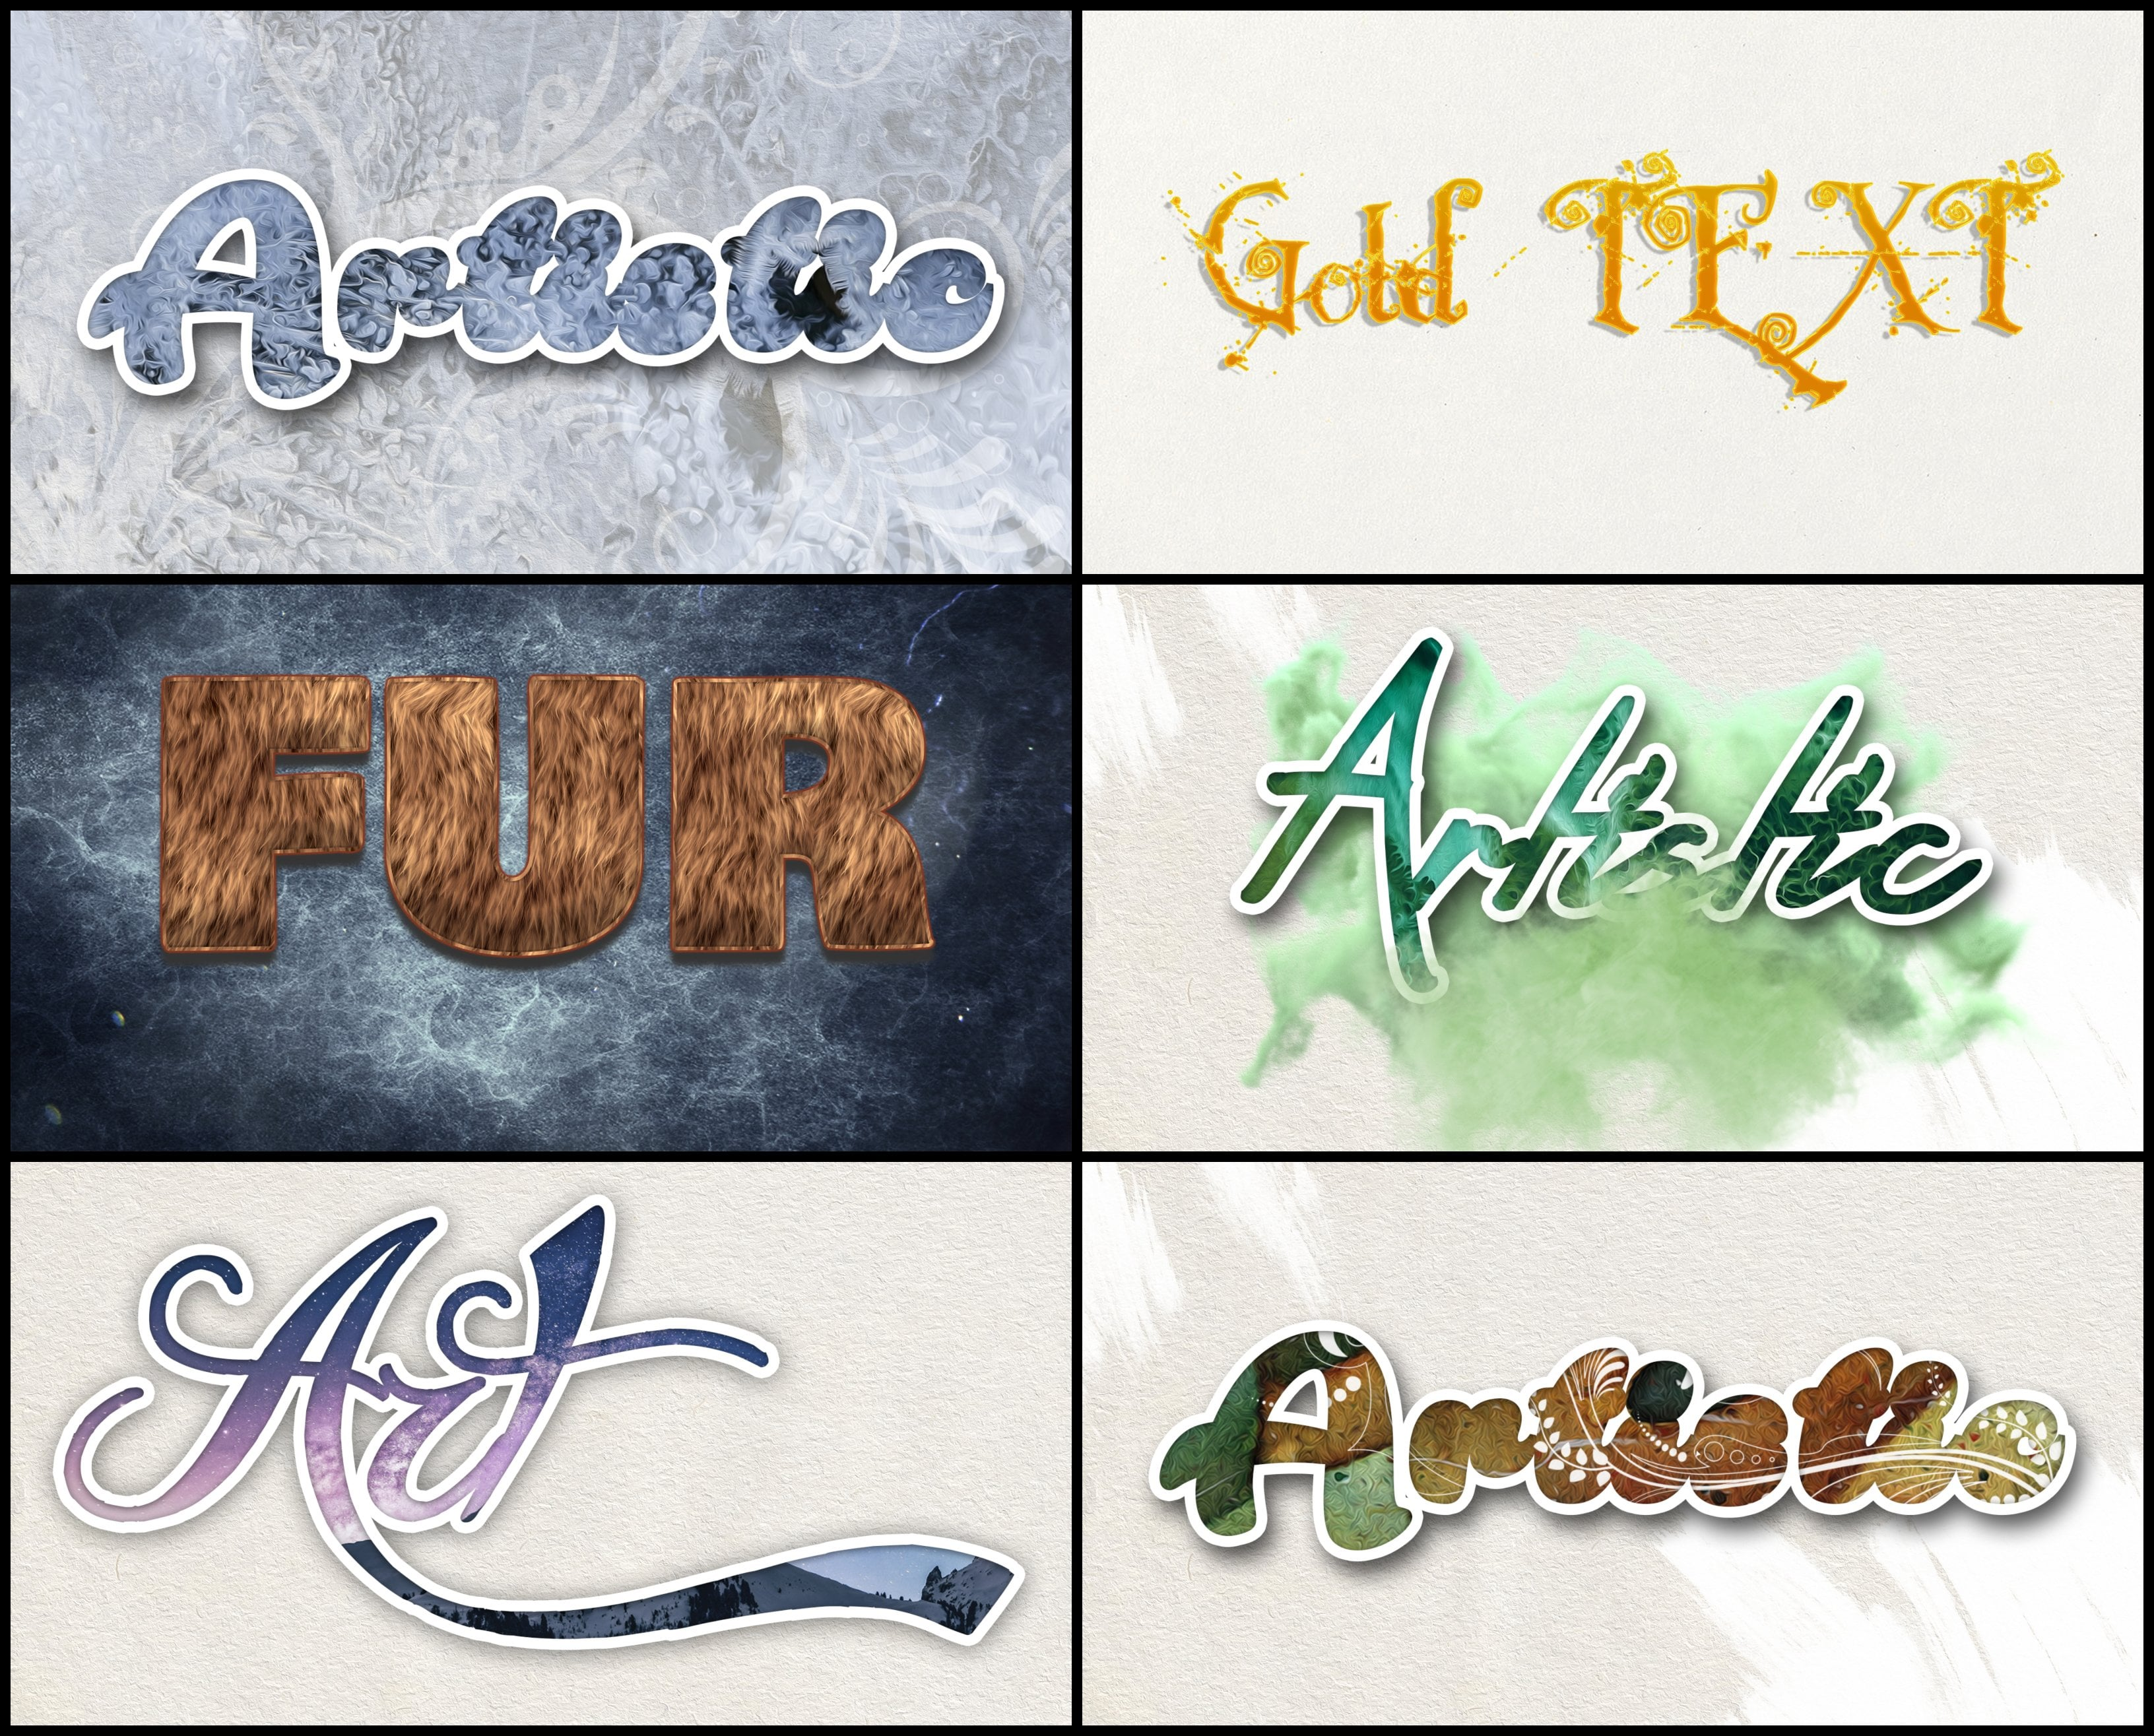 Photoshop Elements Text Effects - 40 Different Styles - 4